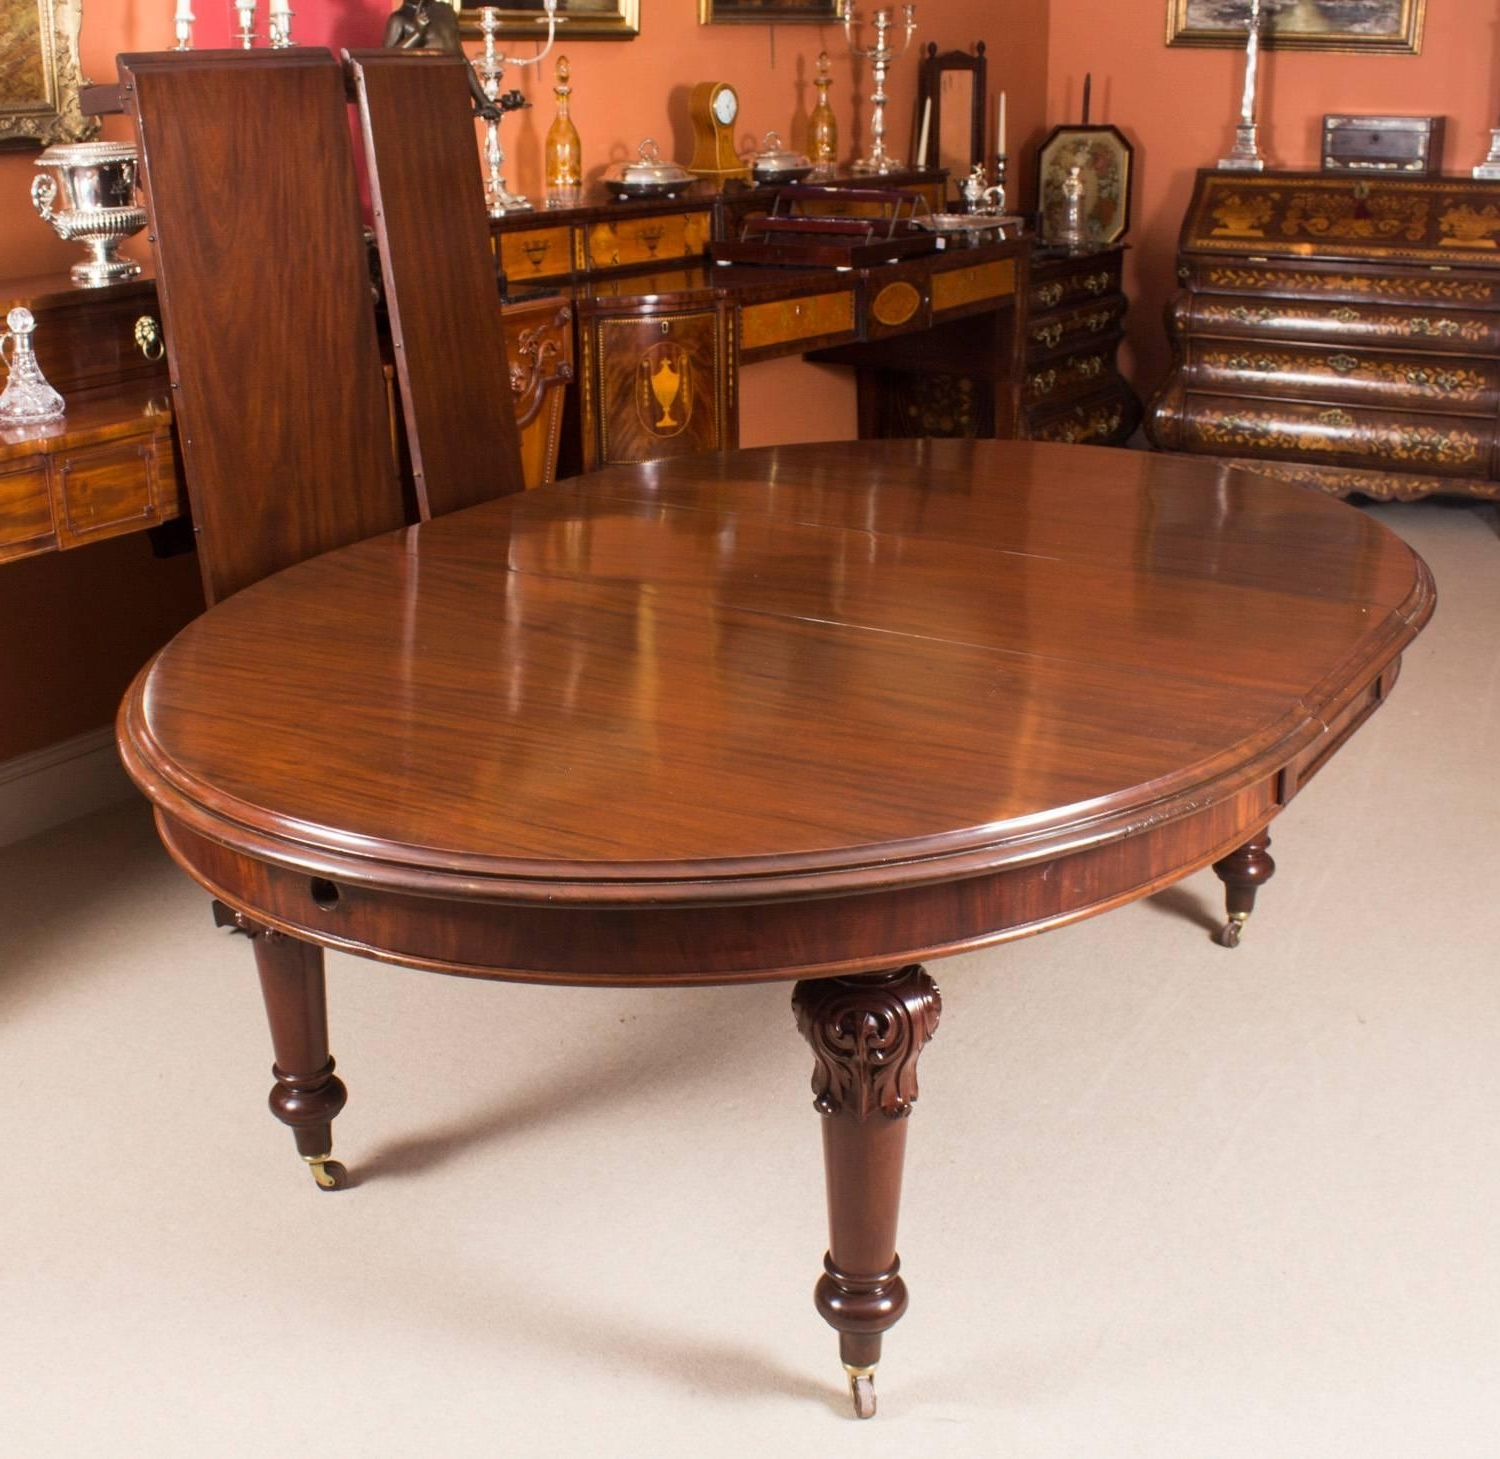 Newest Oval Extending Dining Tables And Chairs Within 19Th Century Victorian Oval Extending Dining Table And Ten Chairs (View 17 of 25)